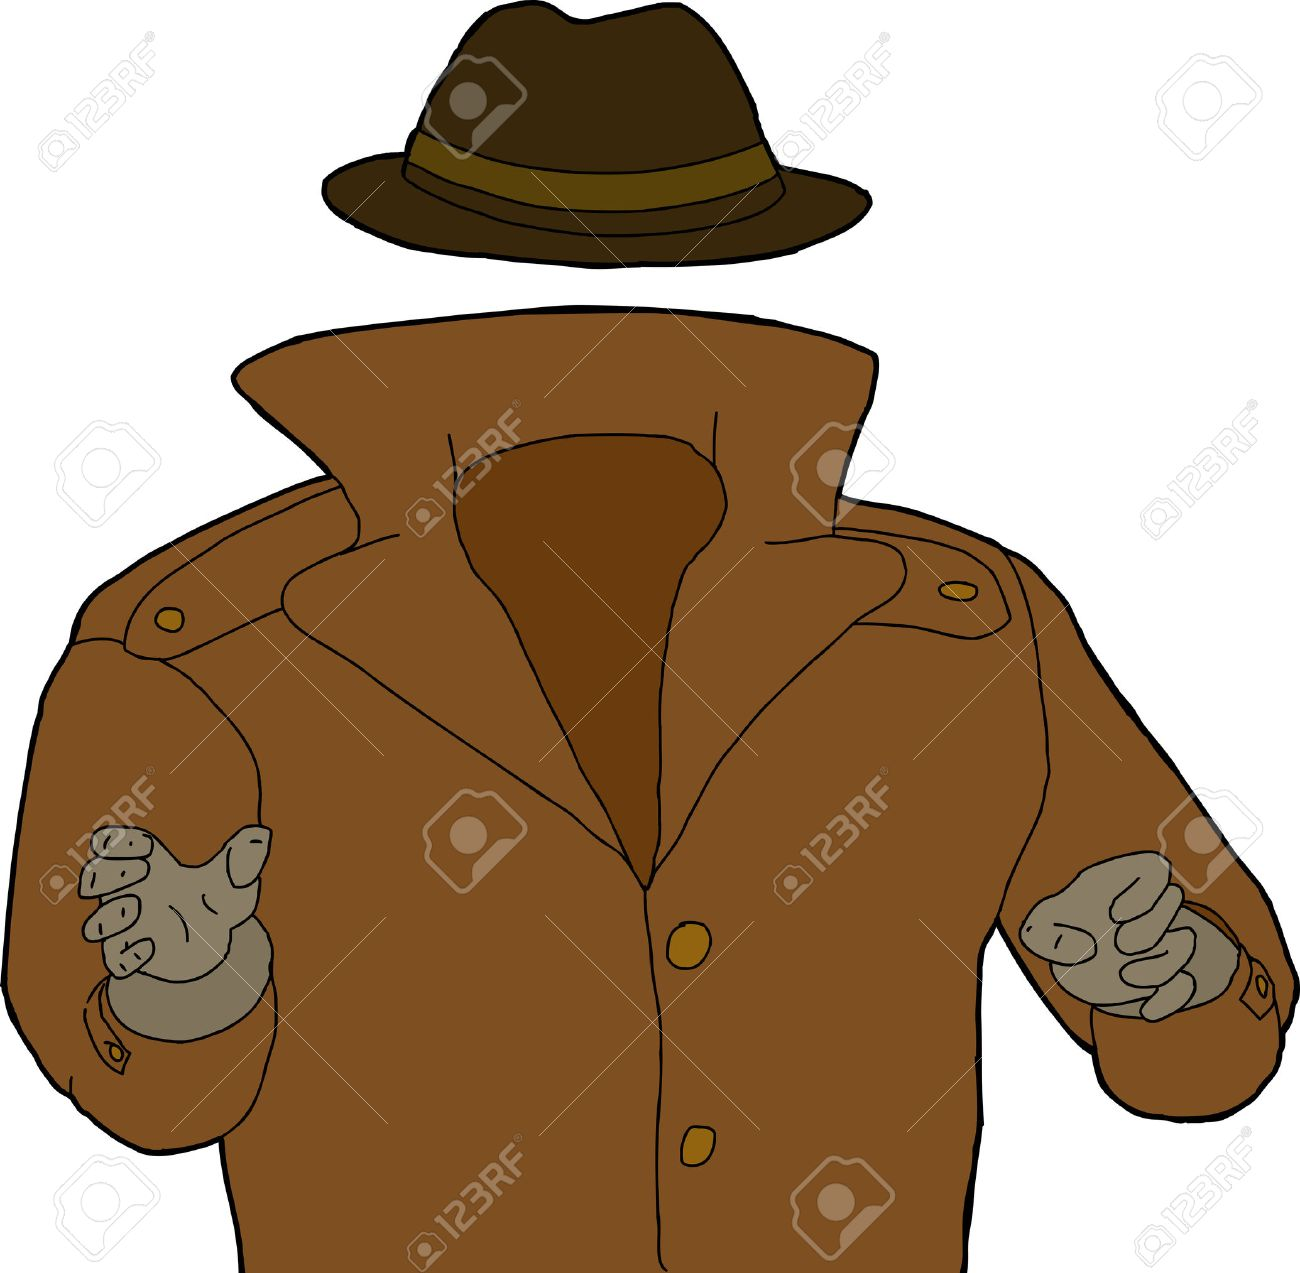 Man in trench coat from the back clipart clip art transparent library Collection of Trench clipart | Free download best Trench clipart on ... clip art transparent library